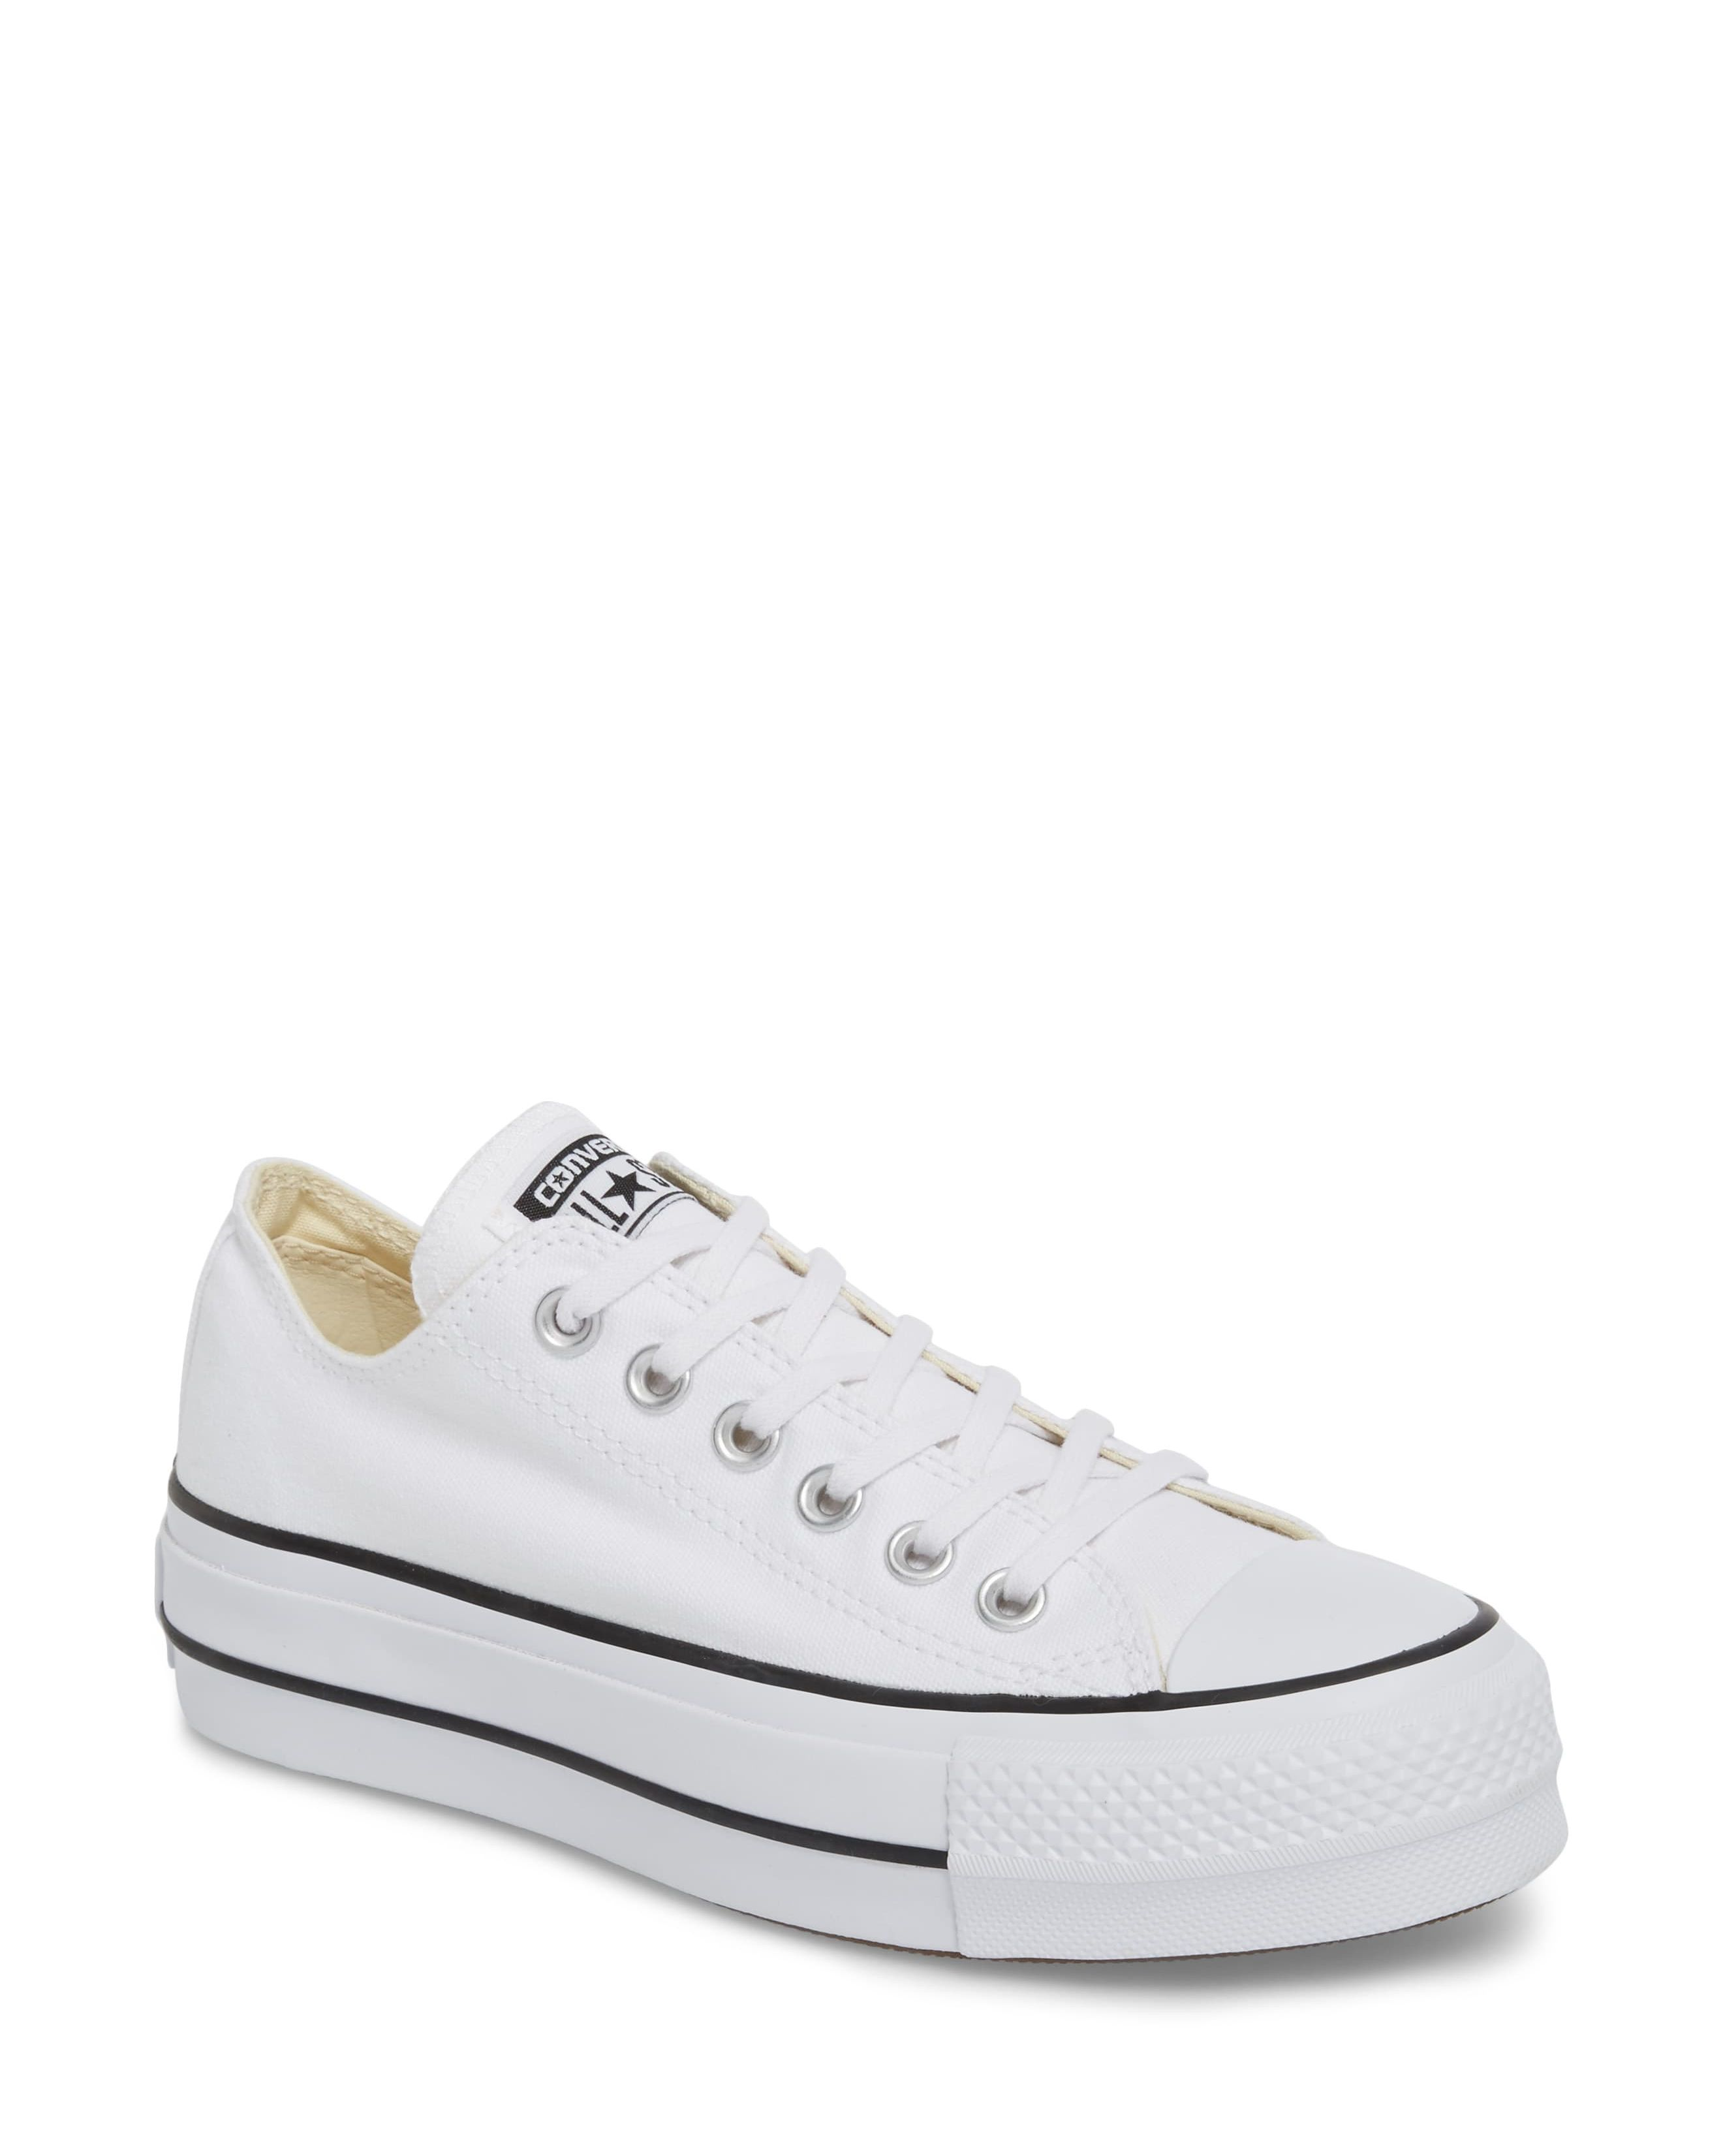 Chuck Taylor® All Star® Platform Sneaker Converse nordstrom.com $65.00 SHOP NOW Converse may remind you of 8th grade, but there's no denying the comfort of this platform sole.